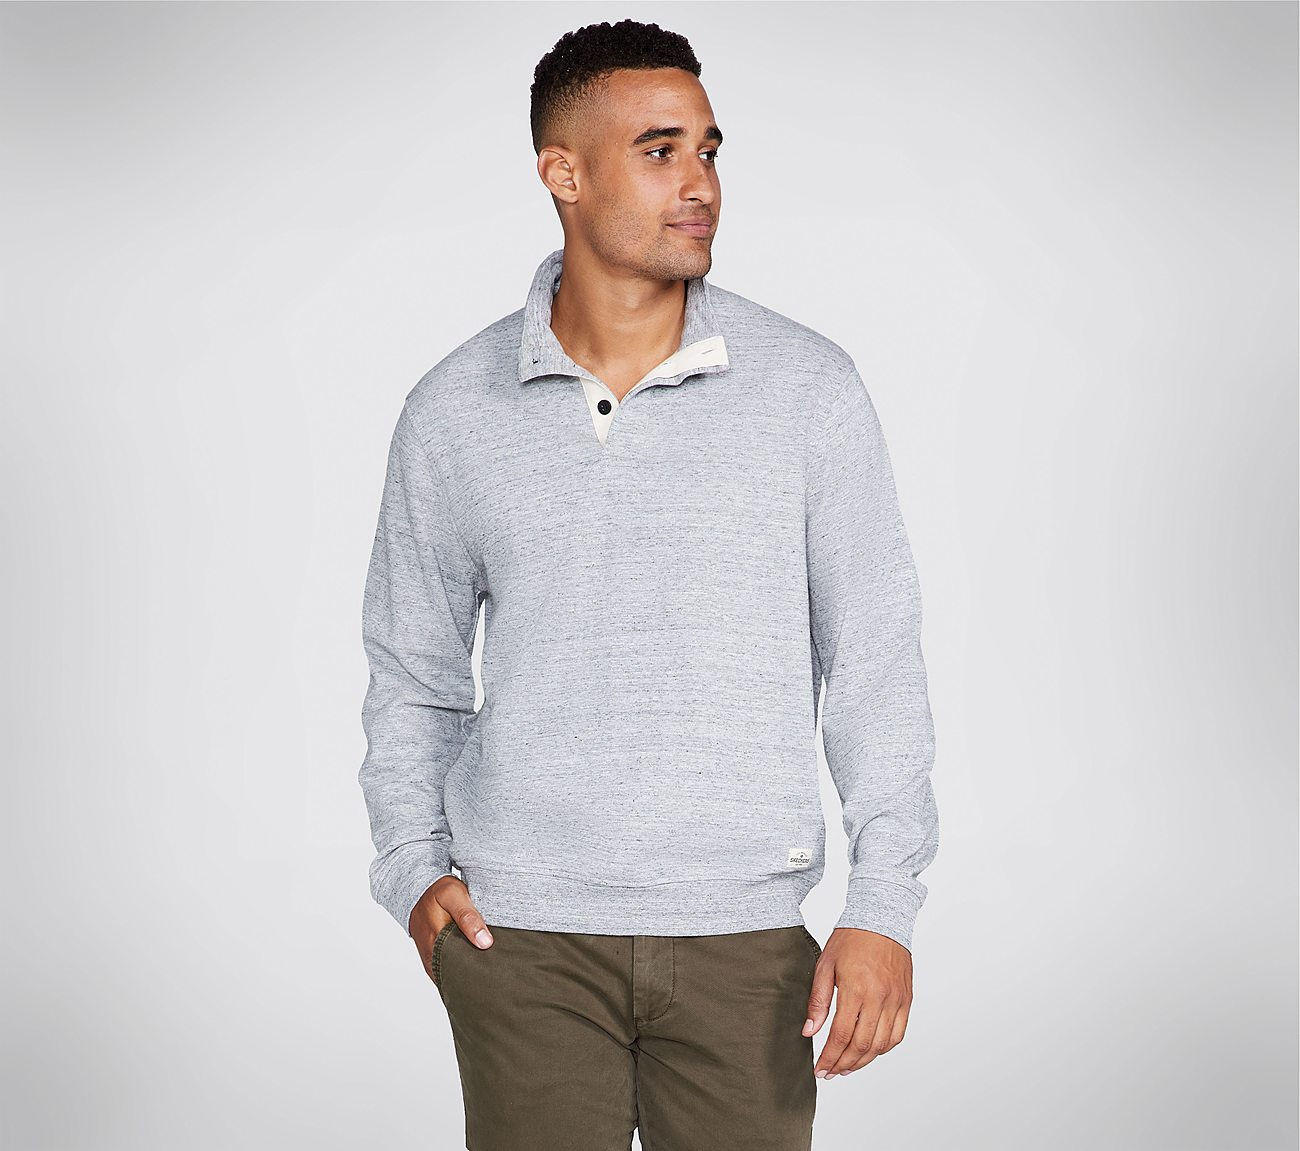 Skechers Apparel Worthy Mock Neck Shirt